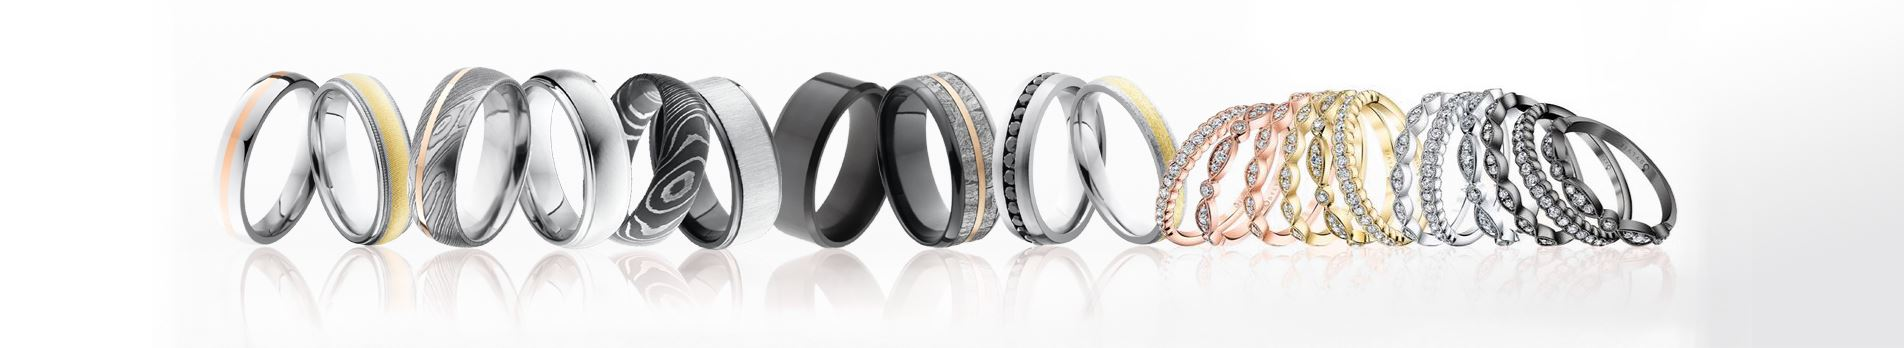 Wedding Ring And Bands For Men And Women Arthursjewelers Com